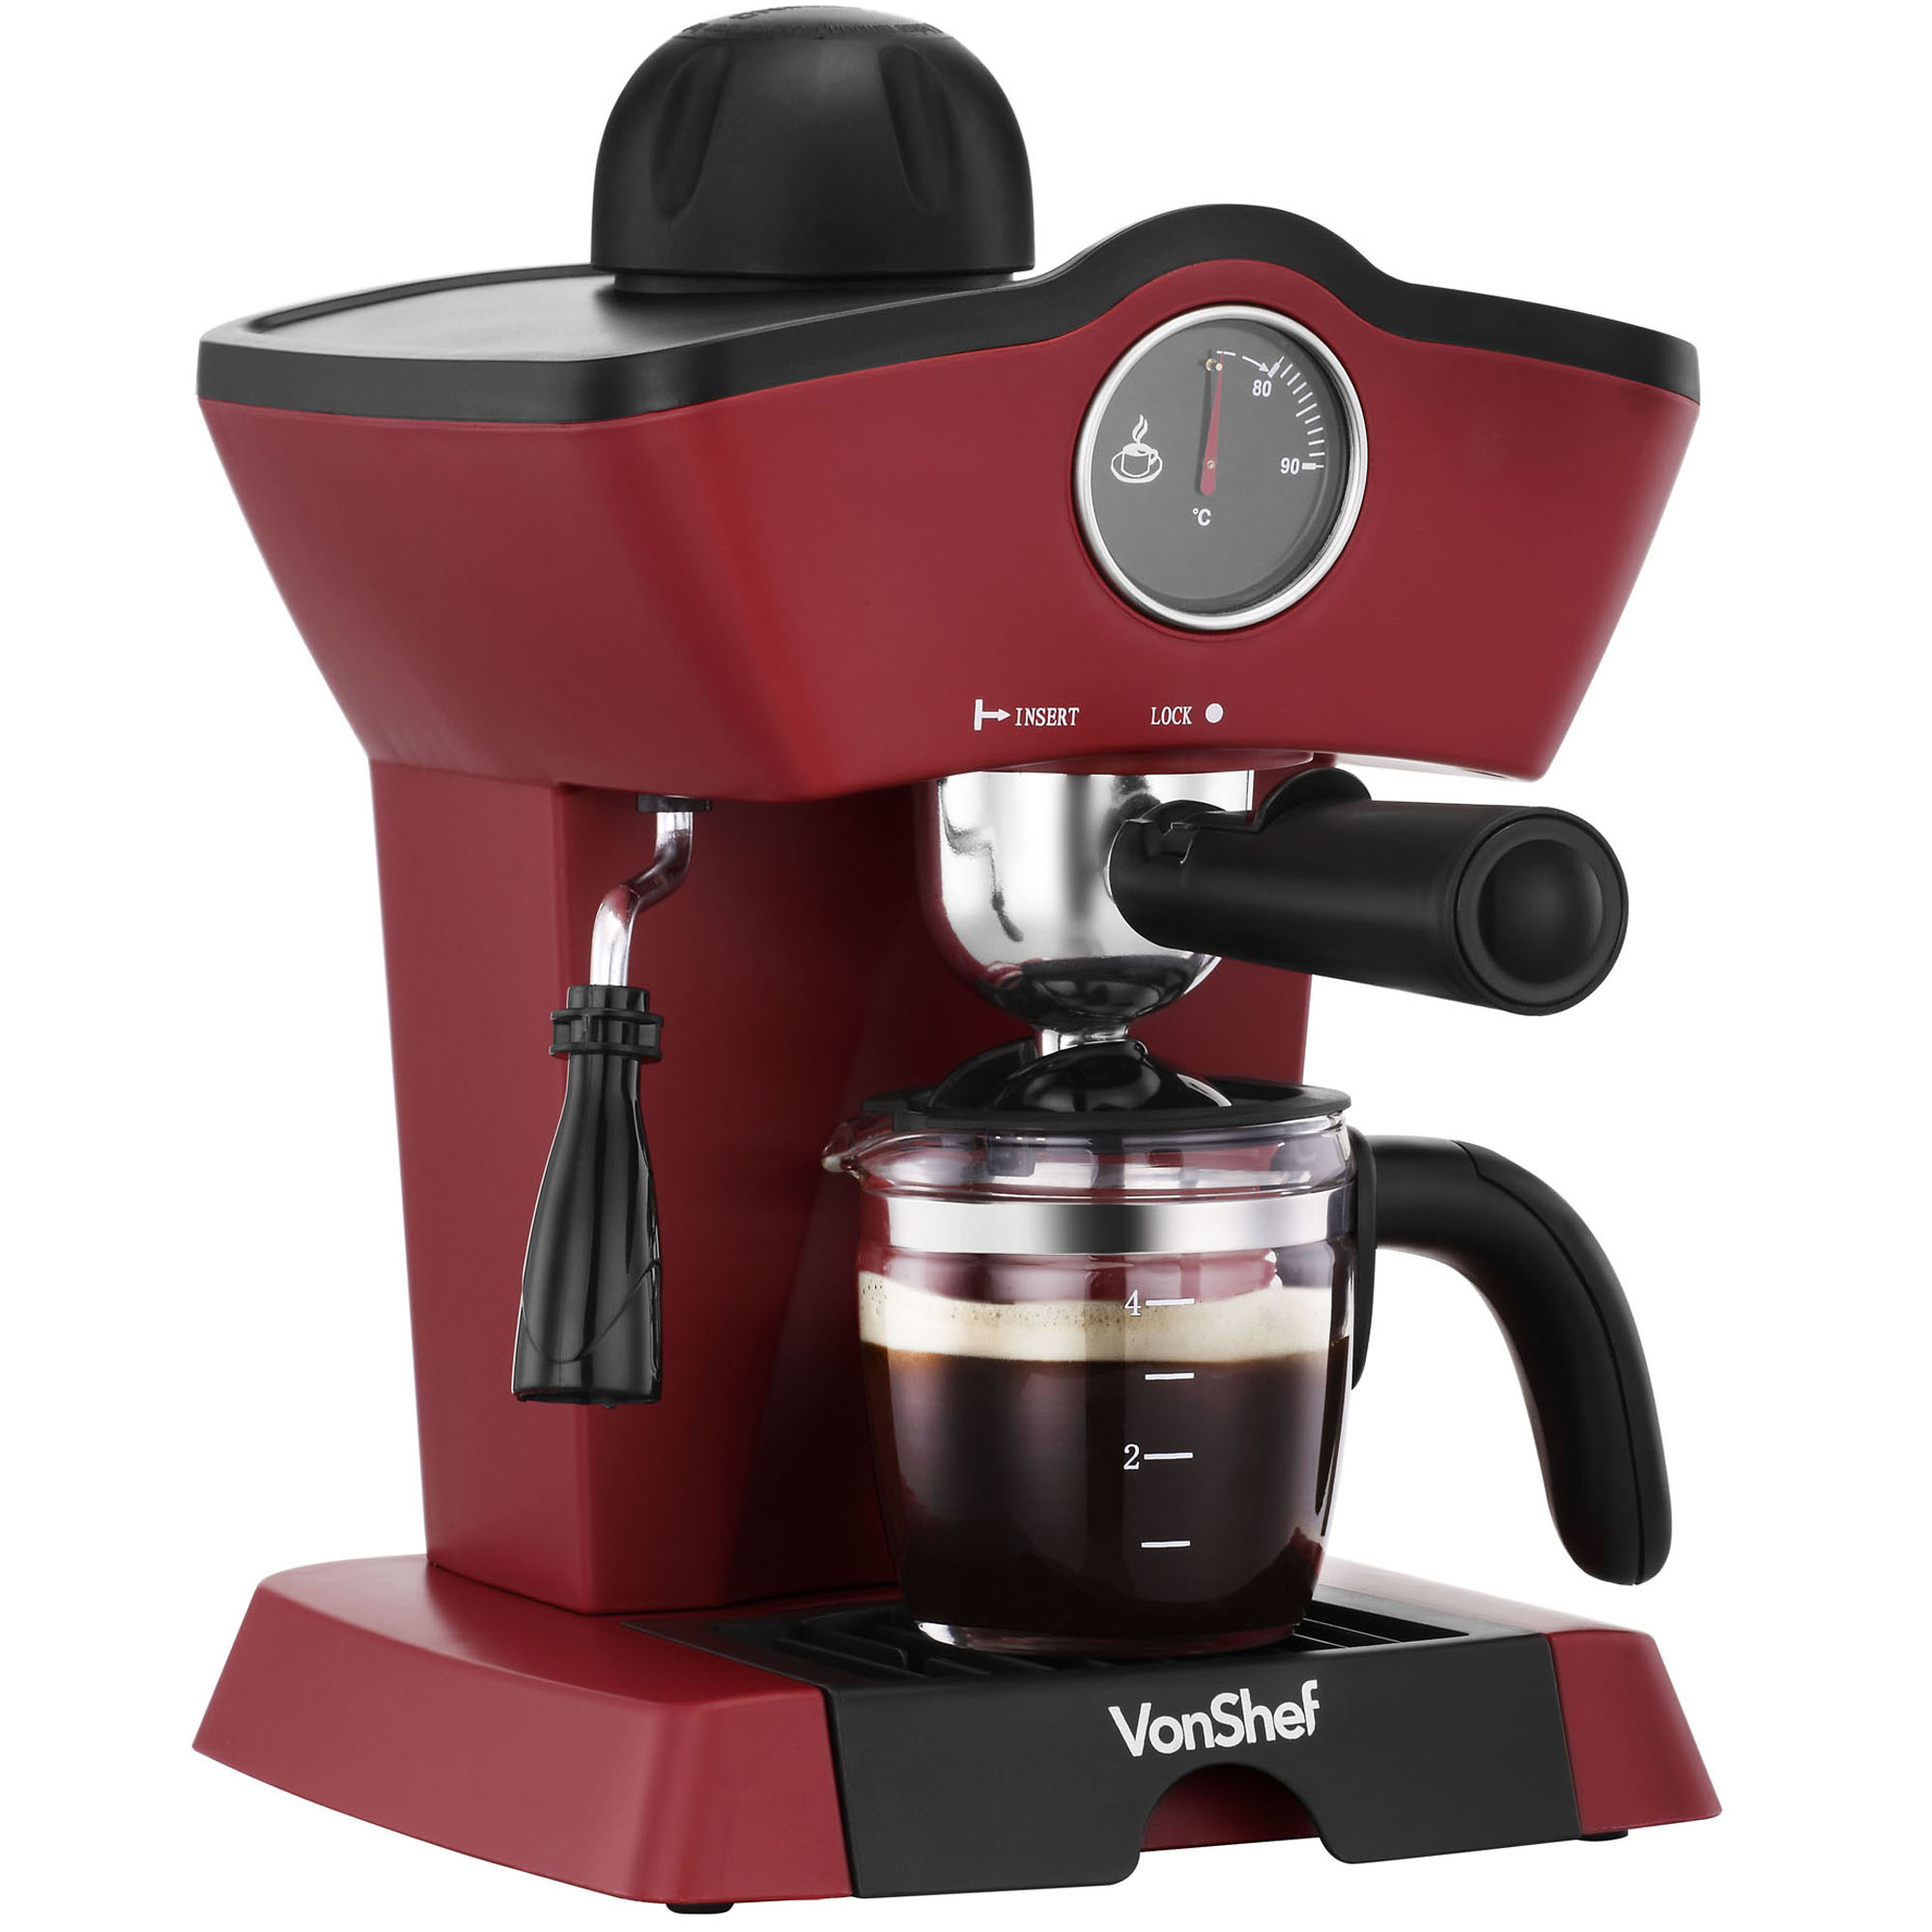 vonshef 4 bar espresso cappuccino latte barista coffee maker machine red black 5060351498197. Black Bedroom Furniture Sets. Home Design Ideas